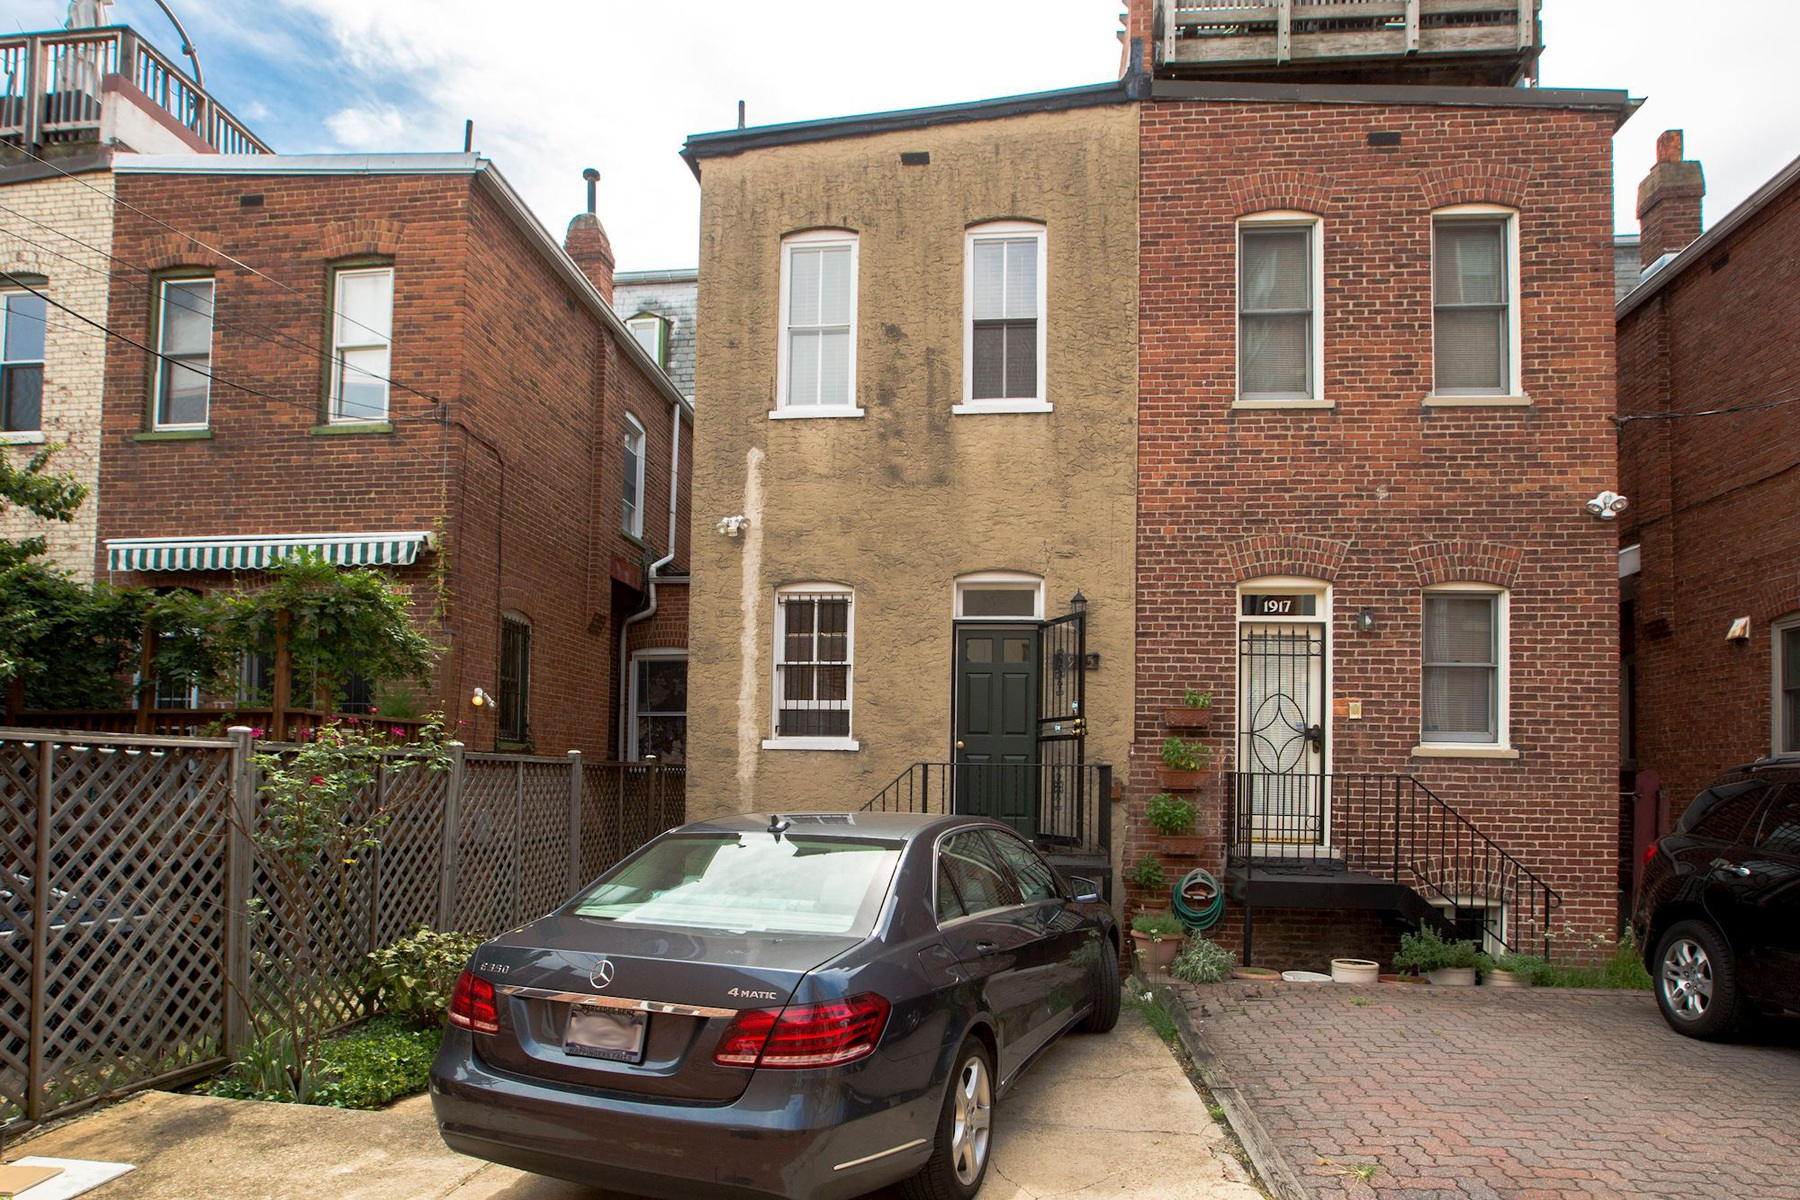 Additional photo for property listing at 1915 S Street, Washington  Washington, District Of Columbia 20009 Vereinigte Staaten